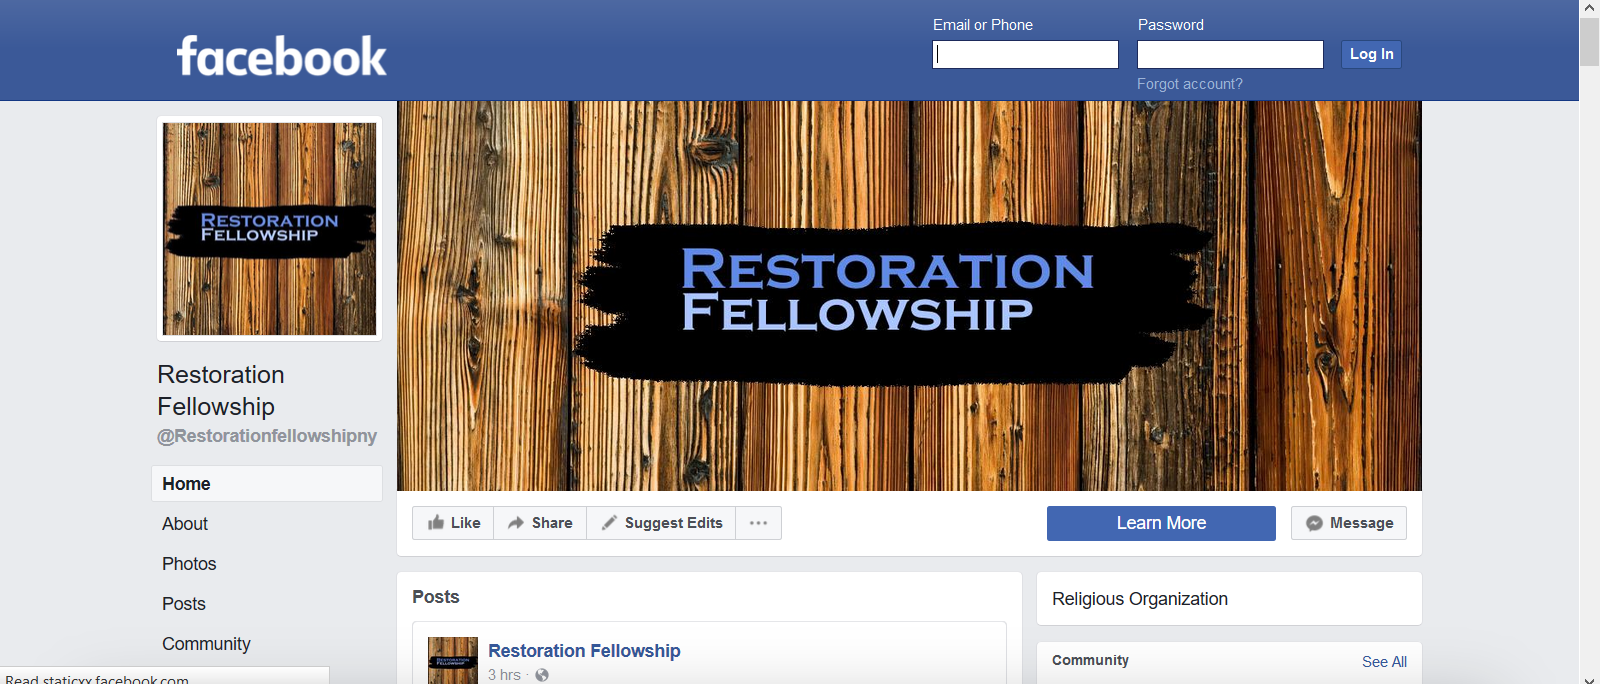 Restoration on Facebook We have a new page on Facebook. Visit us to find out the latest news and events and find links to Restoration Fellowship media, including Pastor David Harwood's new podcast: Love & War!